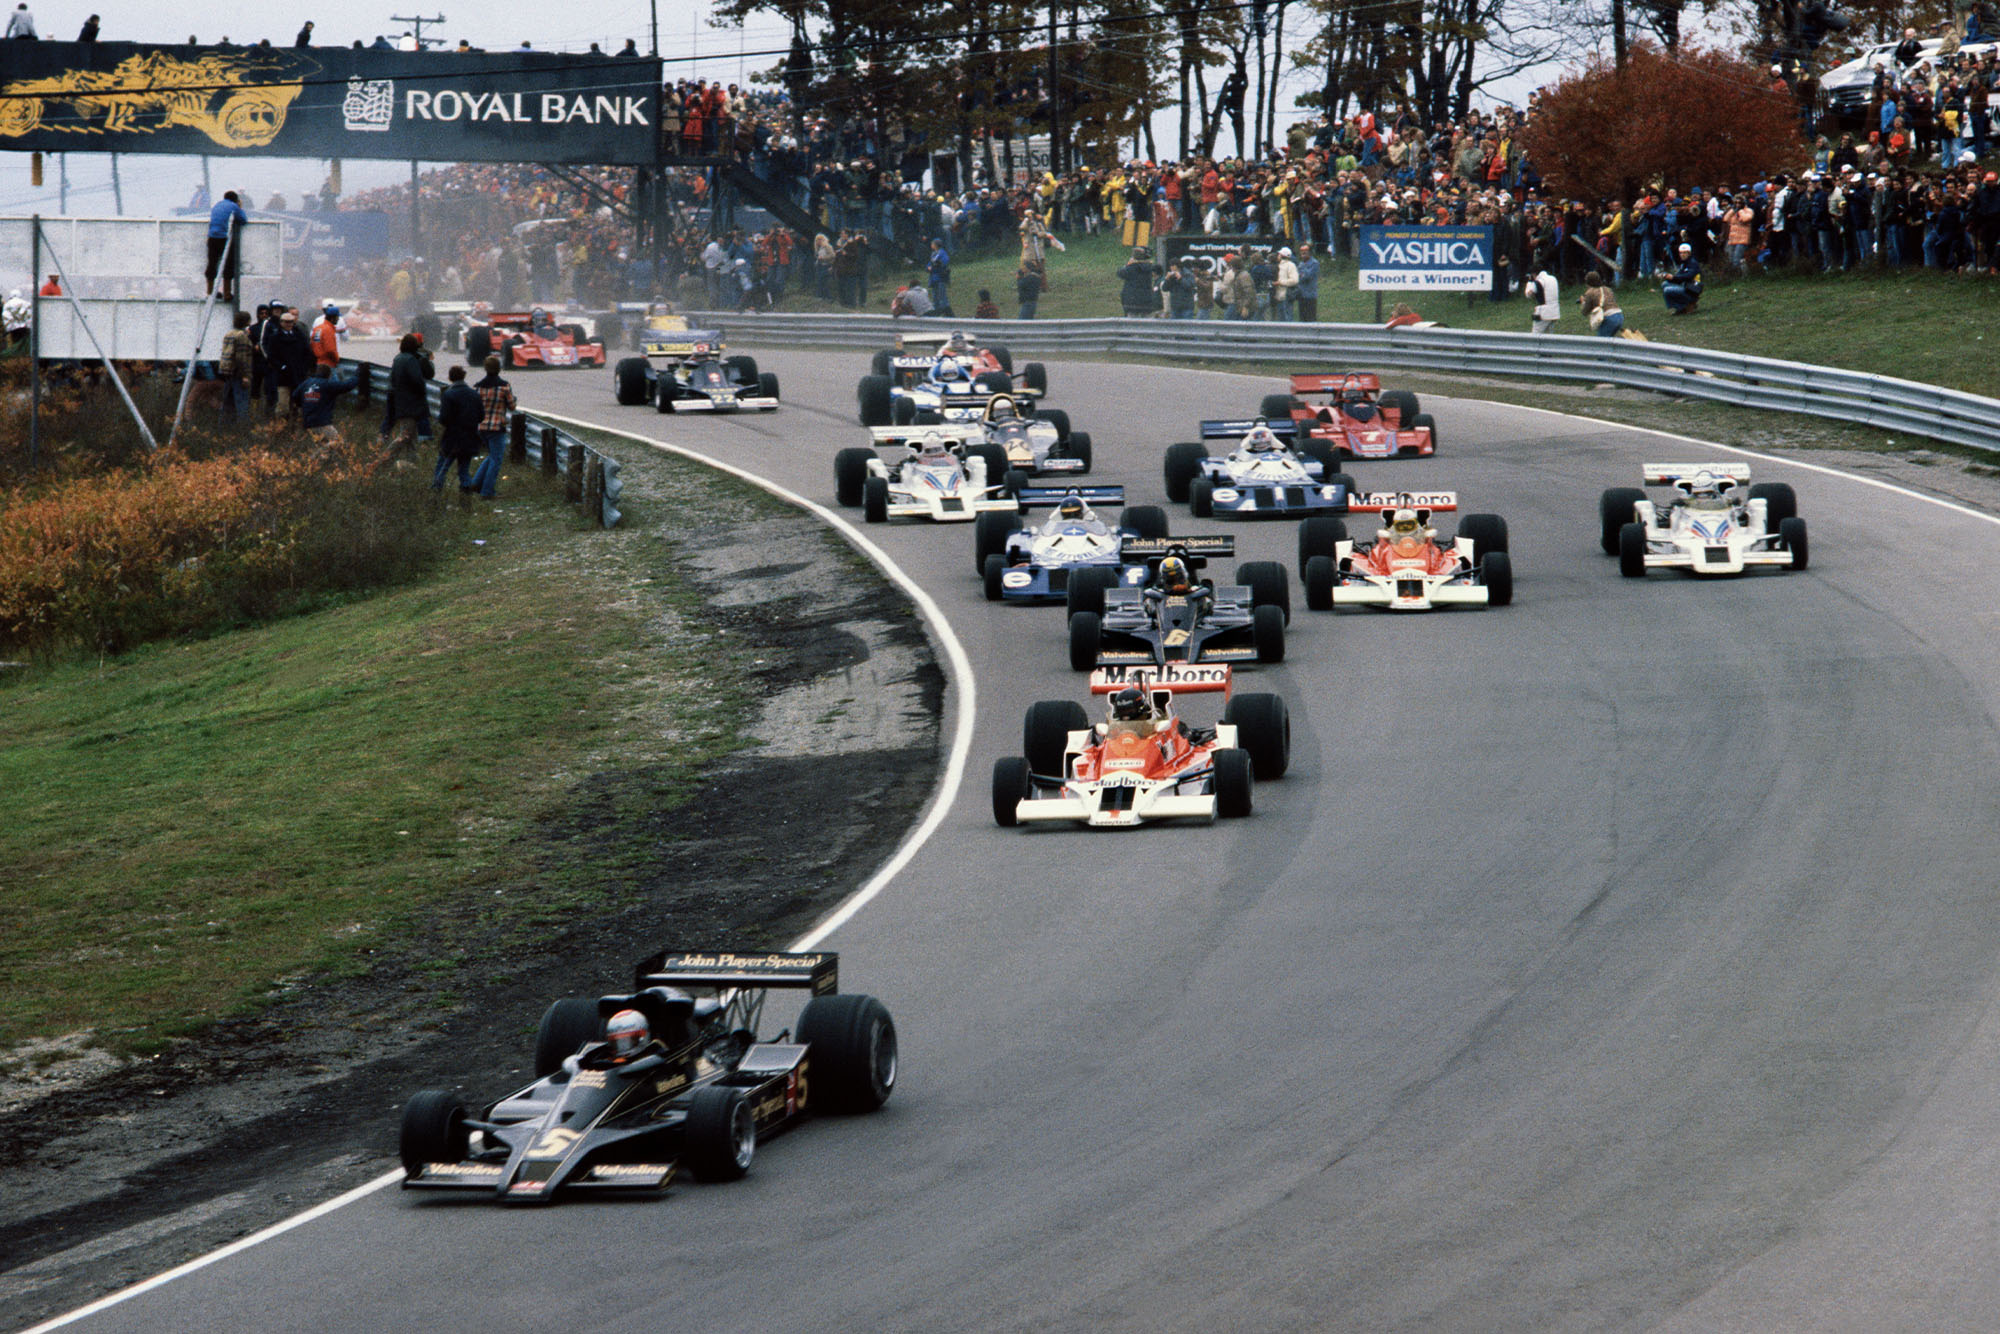 Mario Andretti (Lotus) leads the field on lap 1 at the 1977 Canadian Grand Prix, Mosport Park.